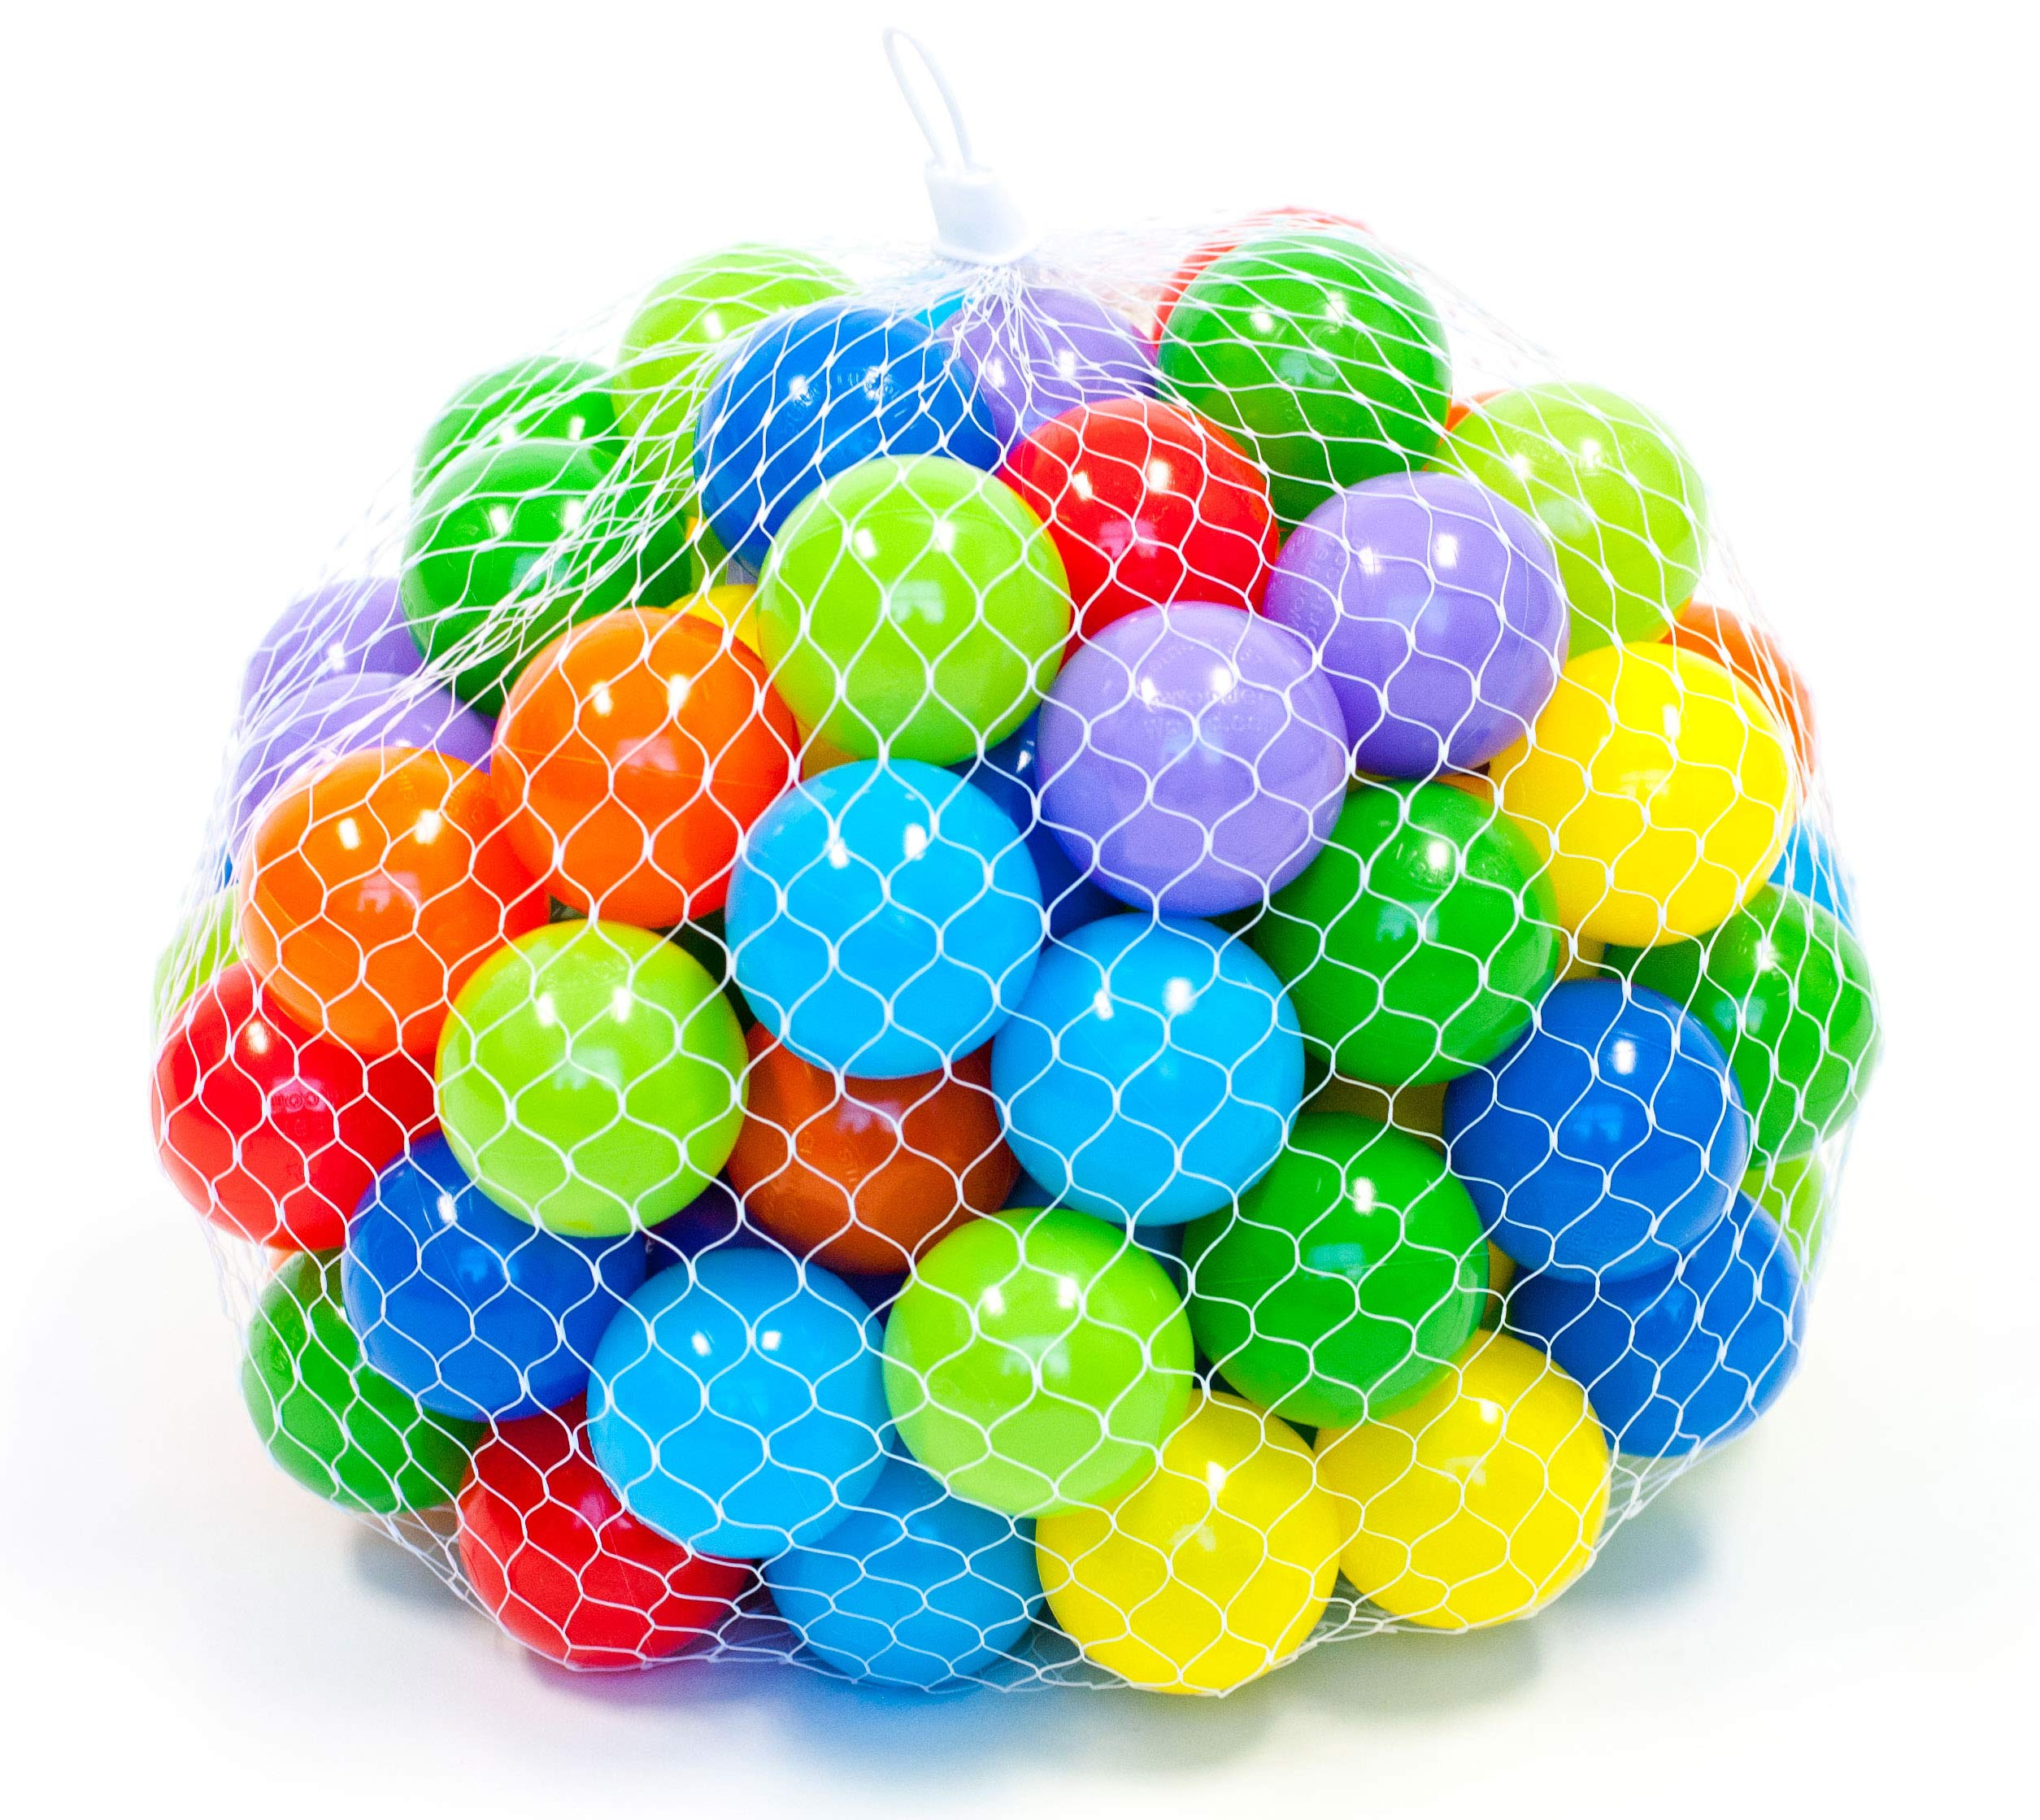 EWONDERWORLD 100 Count 2.4'' Non-Toxic BPA & Phthalate Free Crush Proof Plastic Ball Pit Play Balls with 8 Vibrant Colors and Durable Net Bag by Wonder Playball